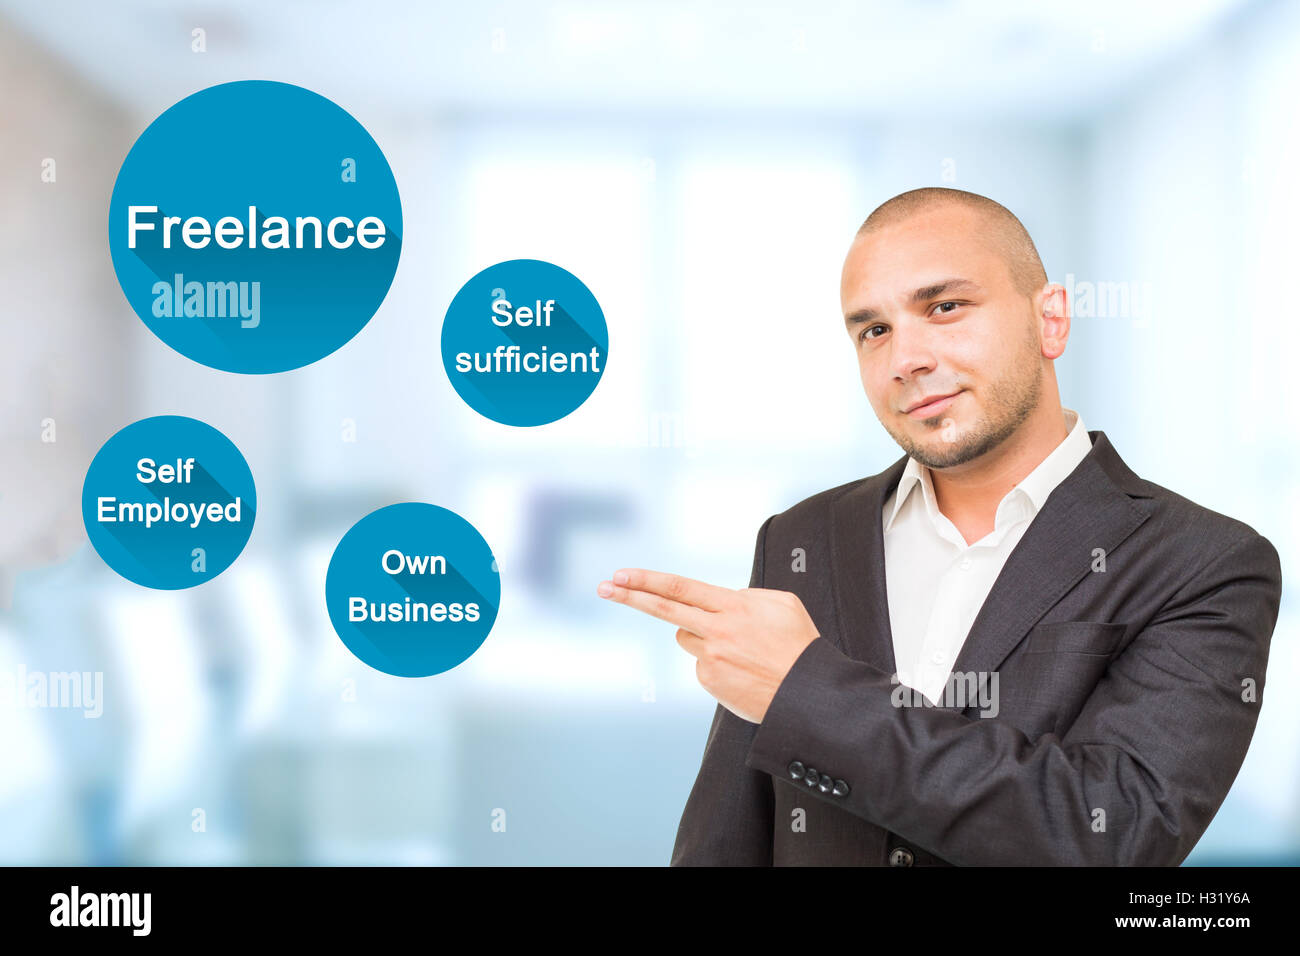 Young handsome man shows freelance work benefits - Stock Image